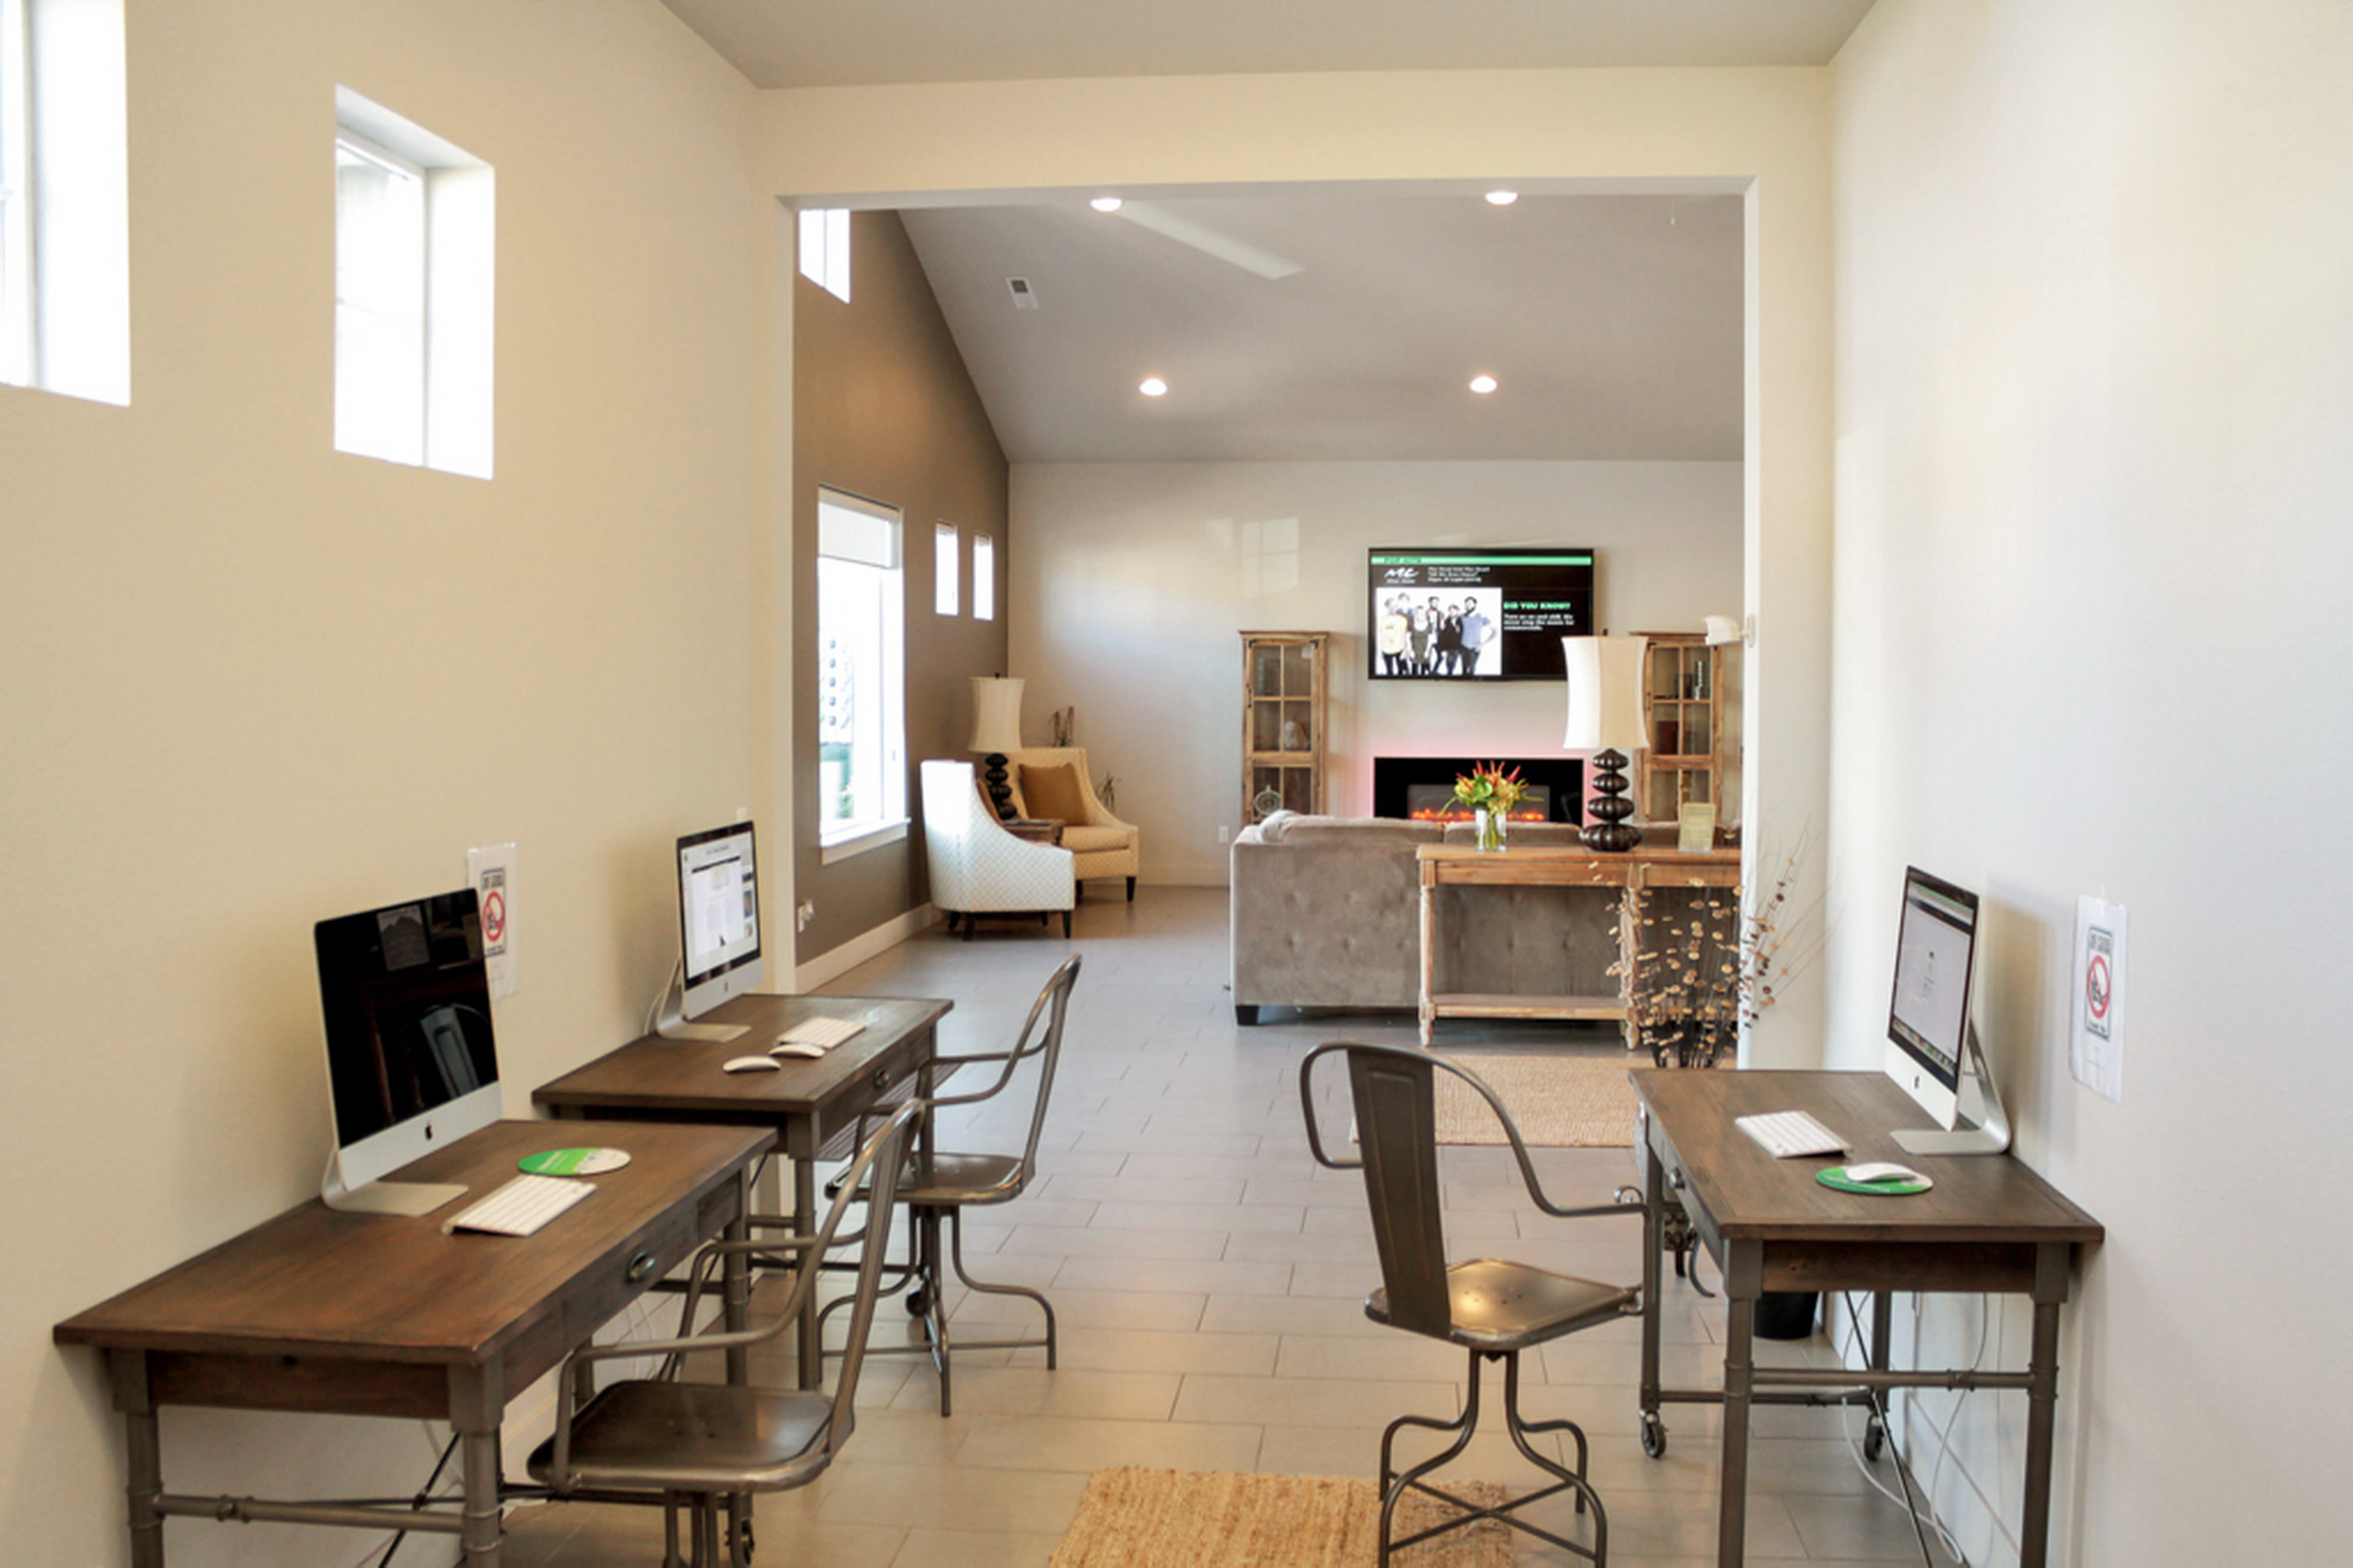 Enjoy apartments with a modern computer lab at Rock Creek Commons